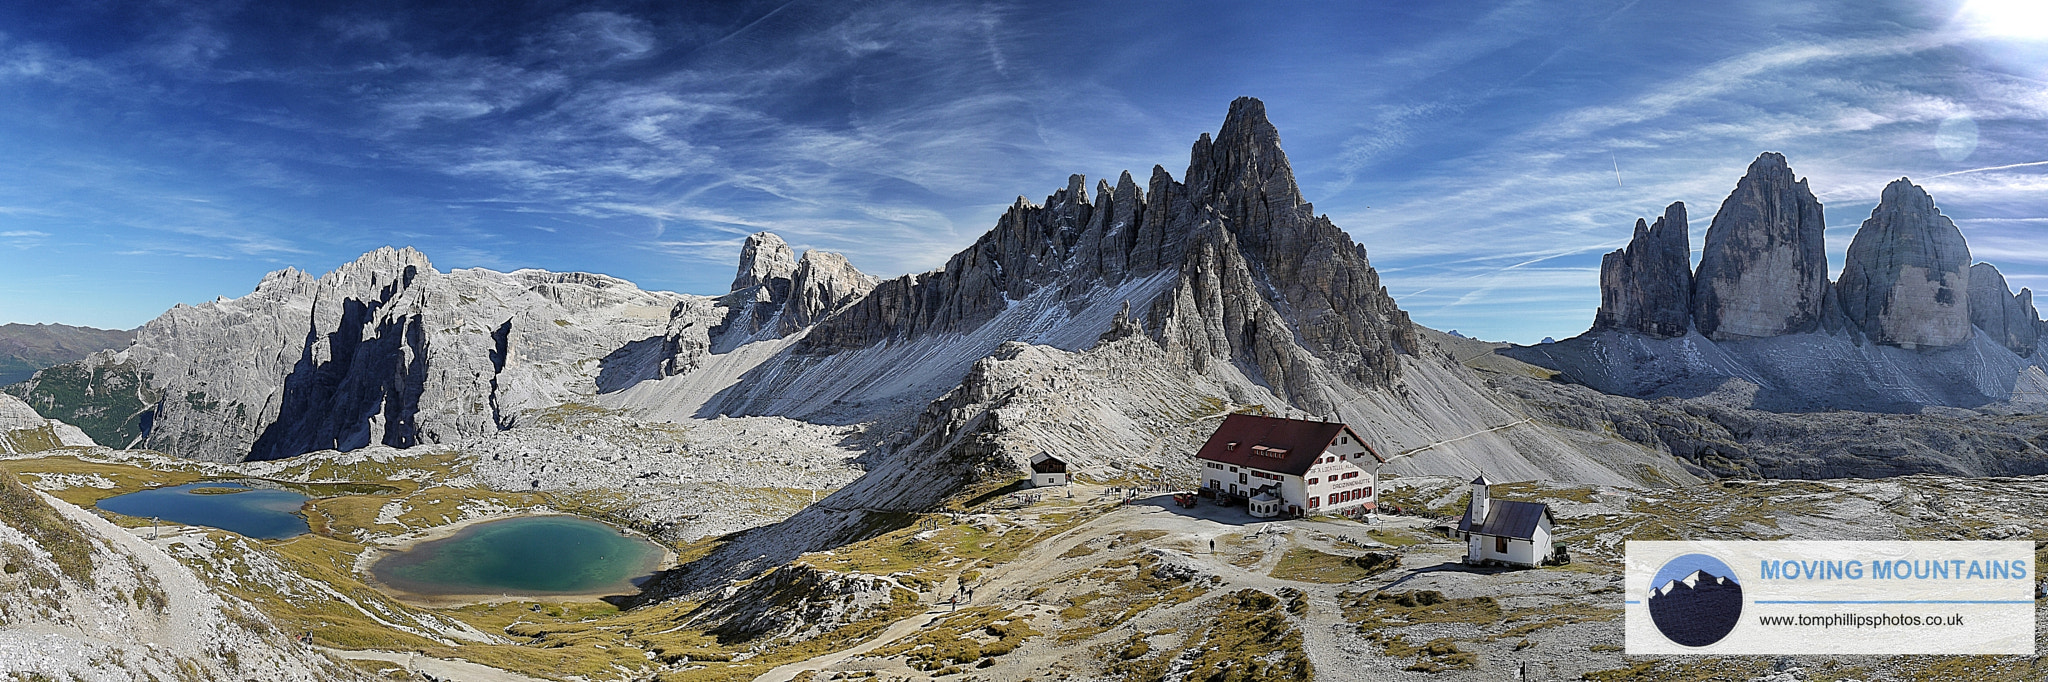 Photograph Rifugio Locatelli, Sexten Dolomites by Tom Phillips on 500px